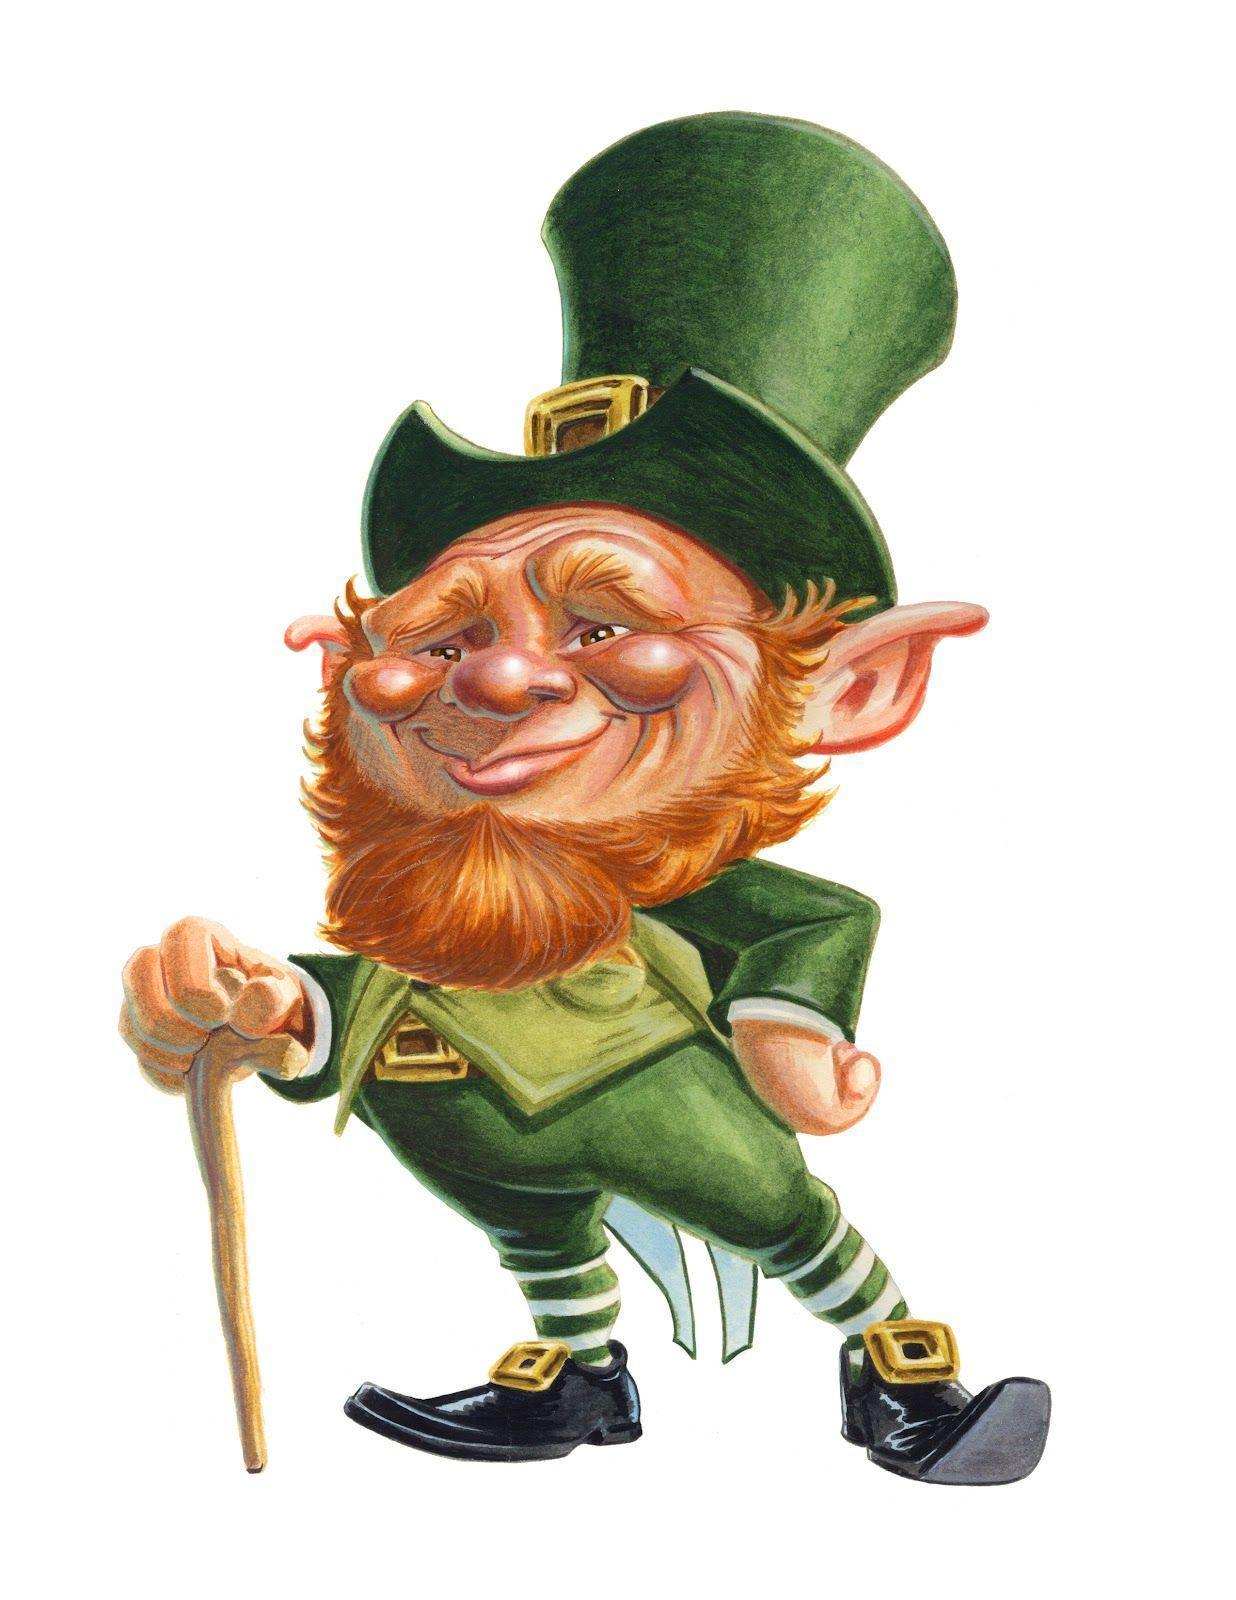 1000+ images about LEPRECHAUM on Pinterest | Clip art, Irish and ...